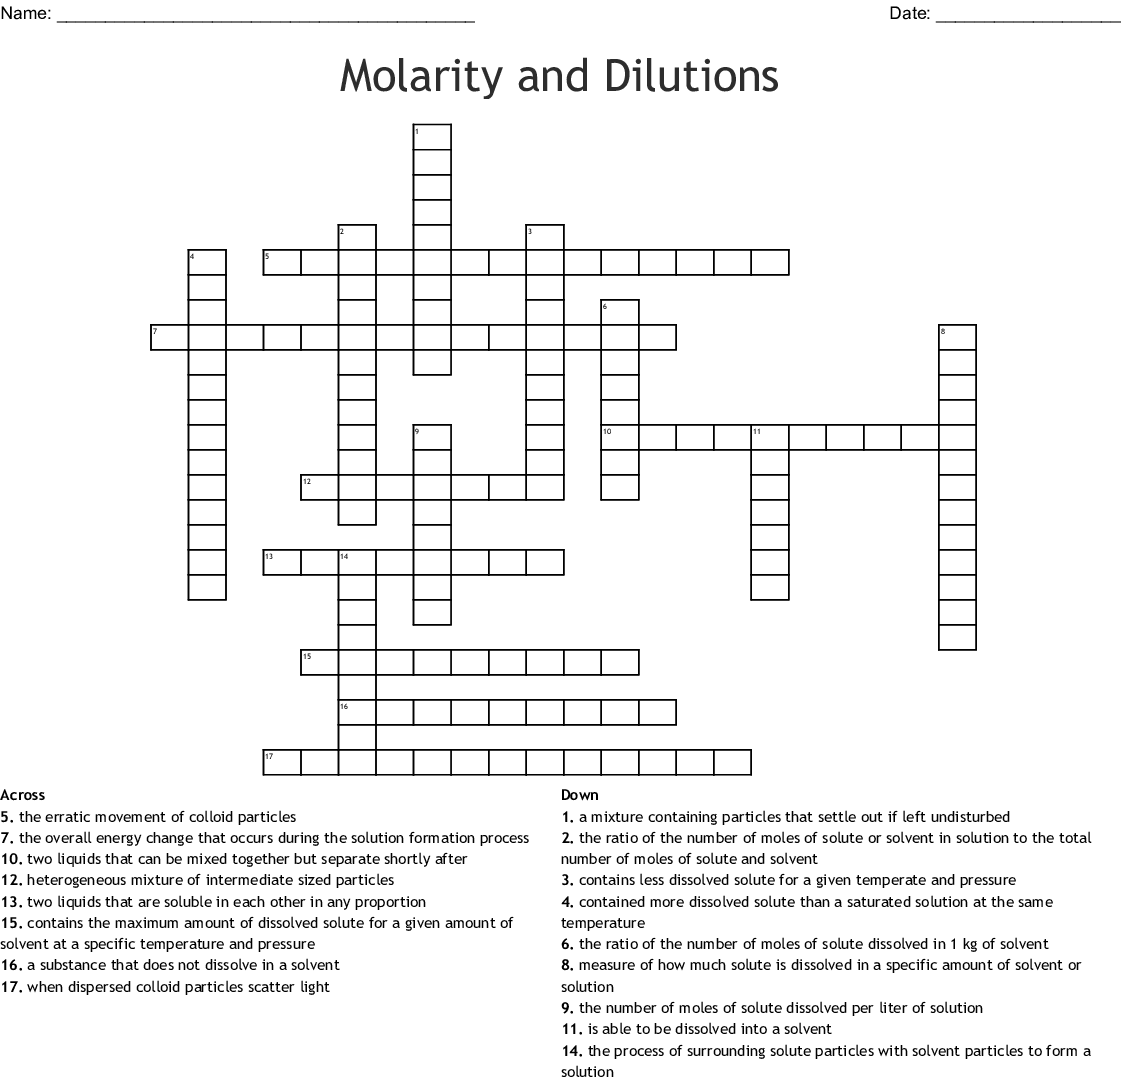 Molarity And Dilutions Crossword